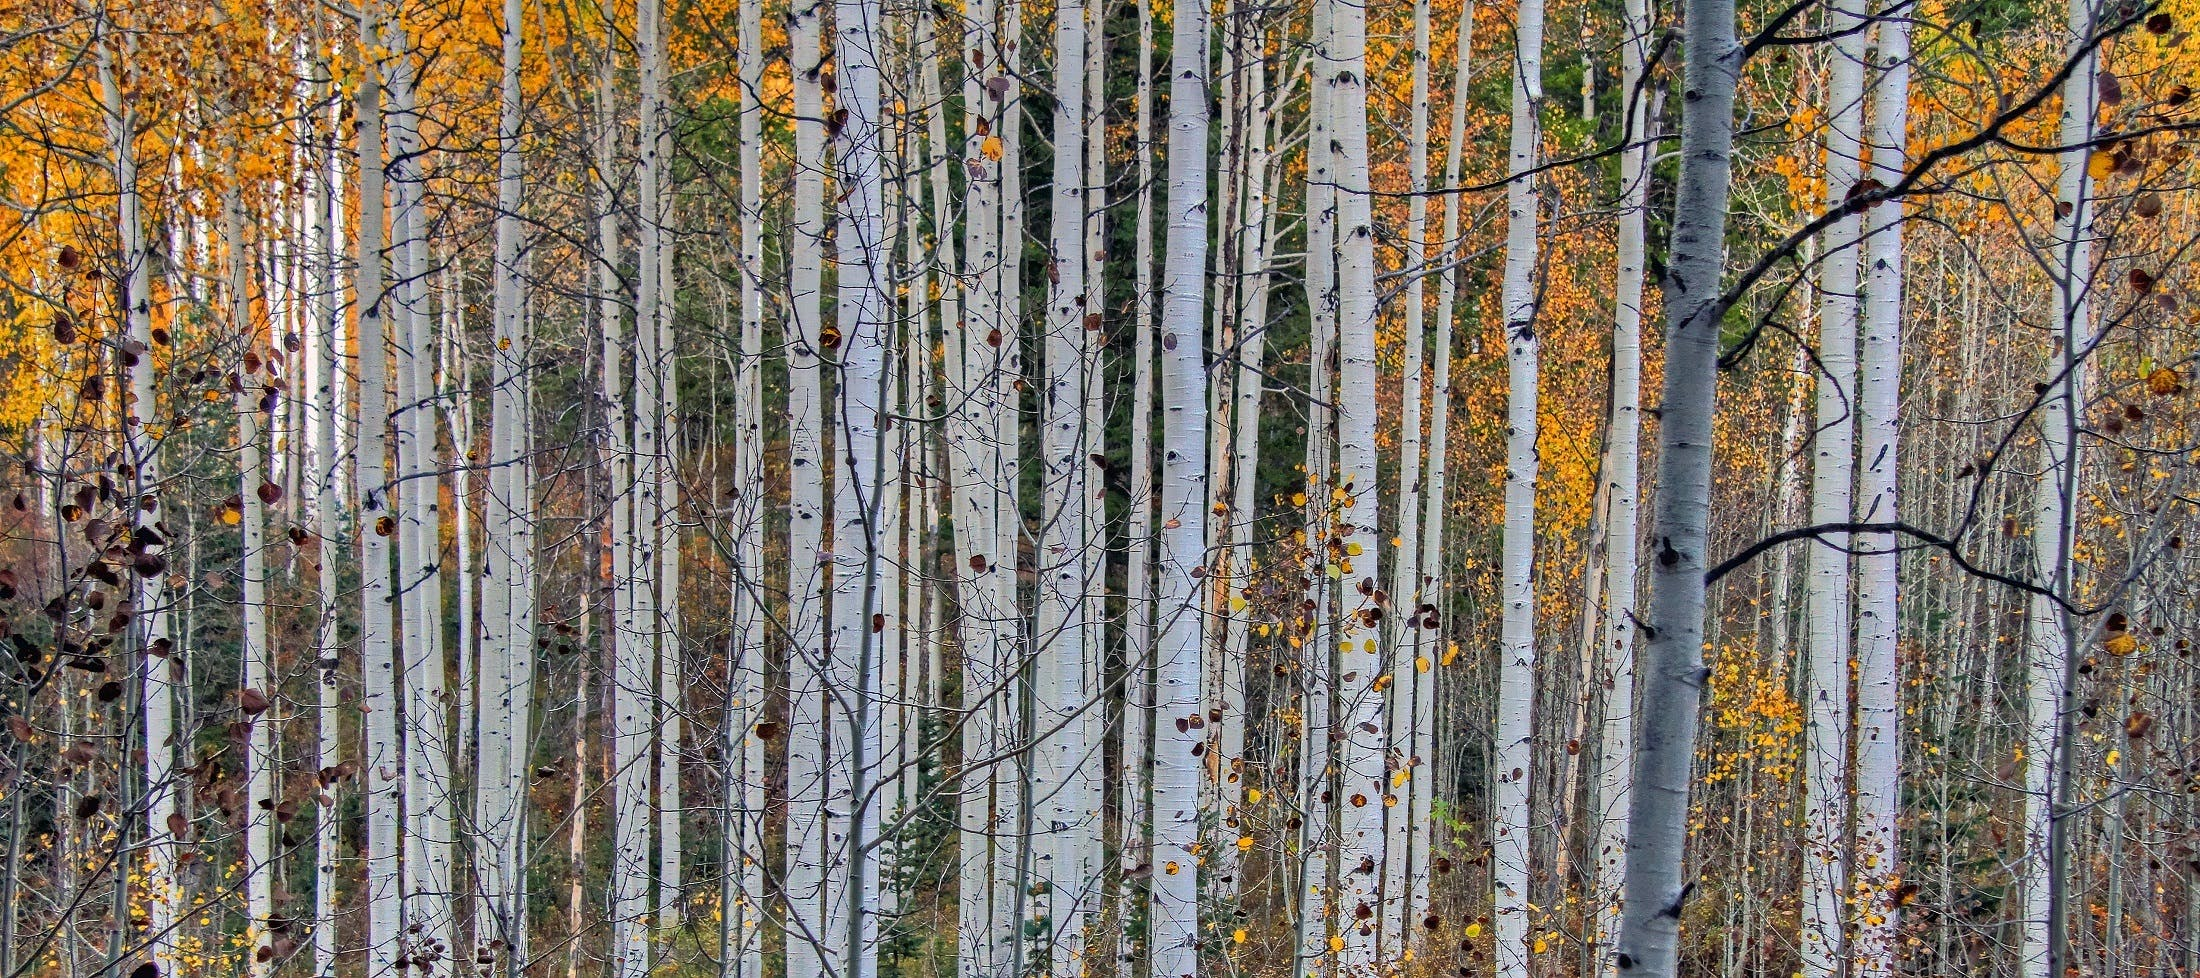 Tall Birch Trees